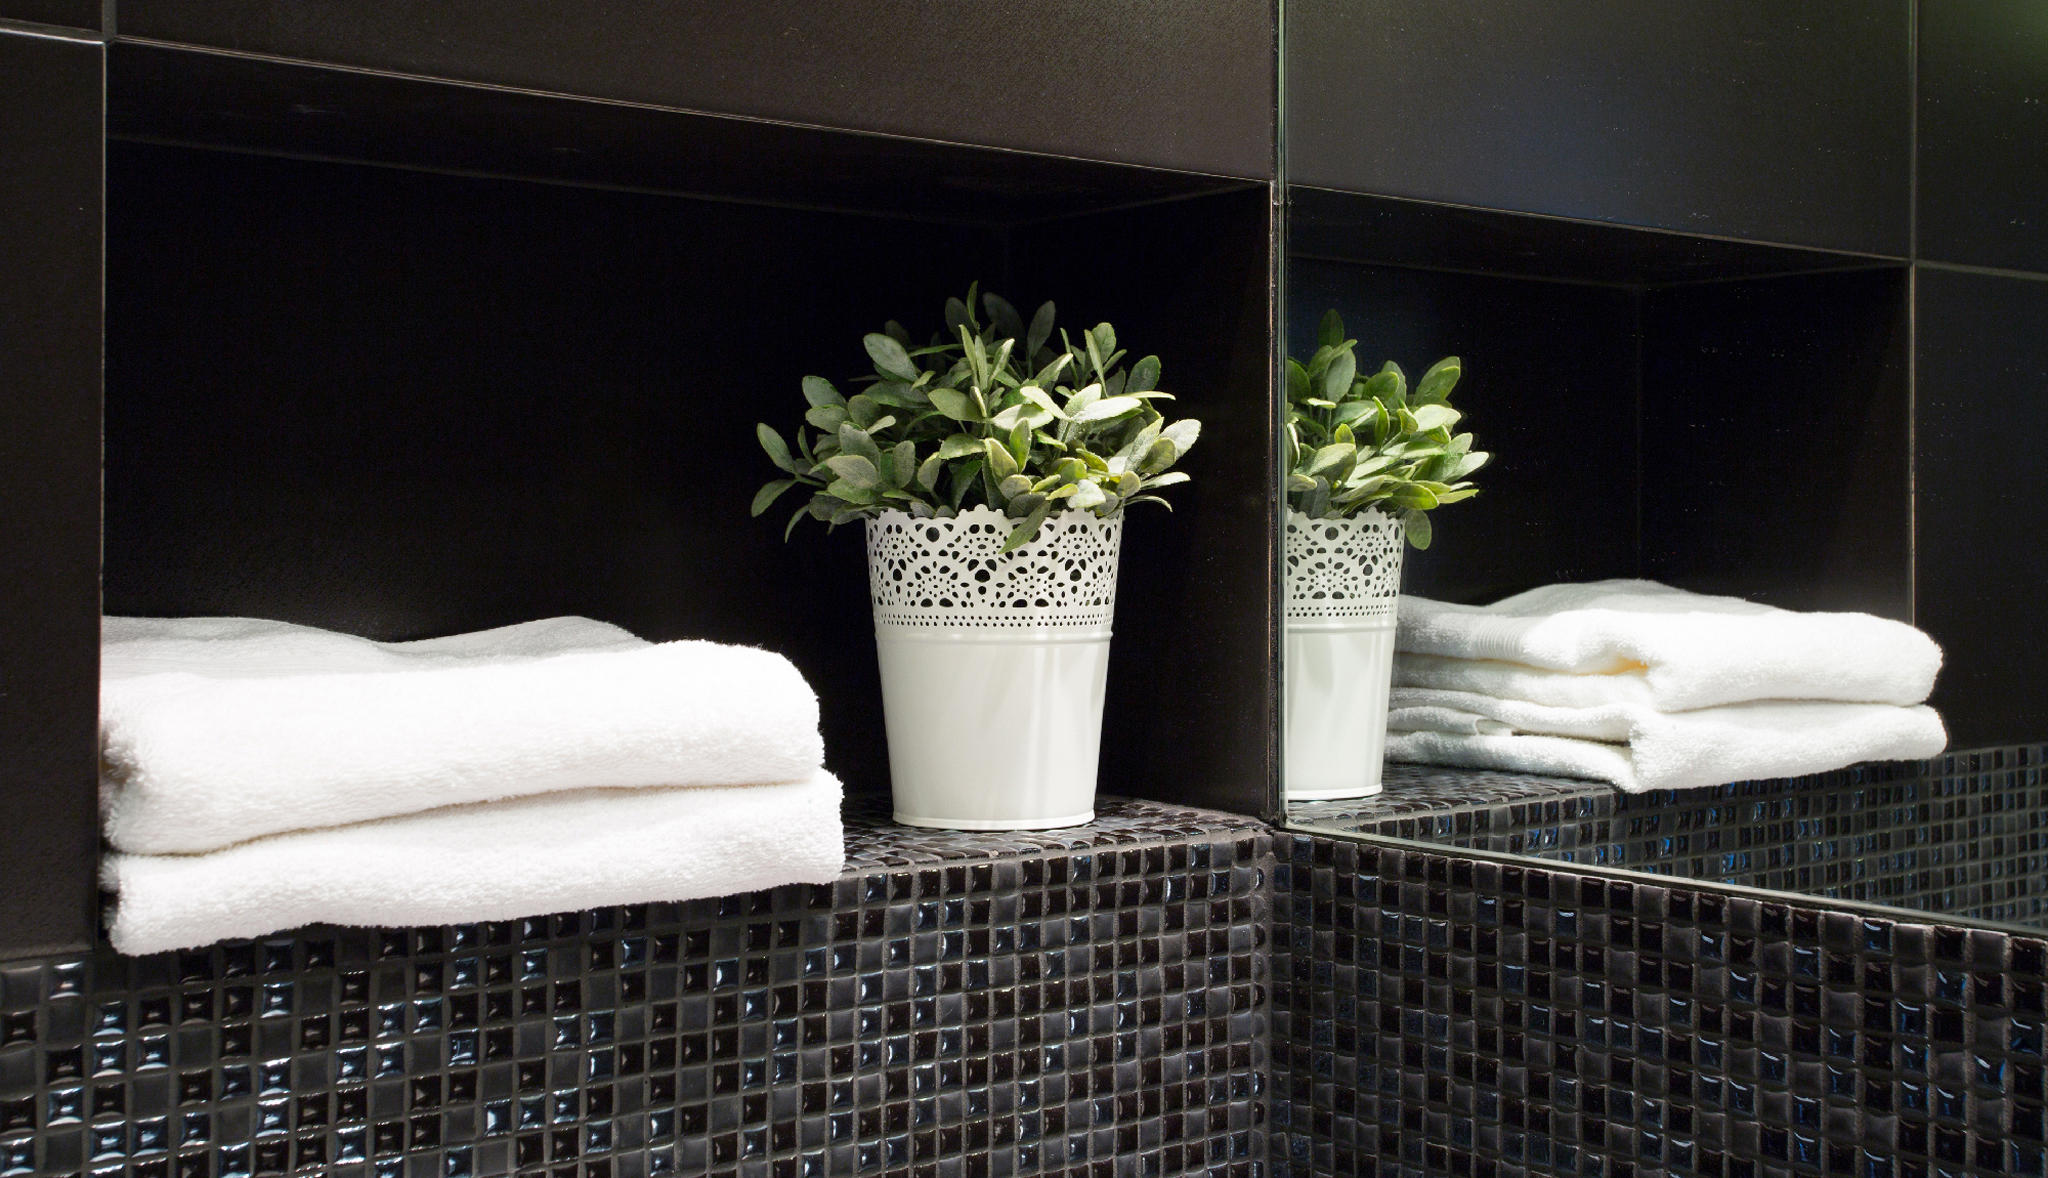 Fluffly Bath Towels in Residence Hotel Room's Bathrooms